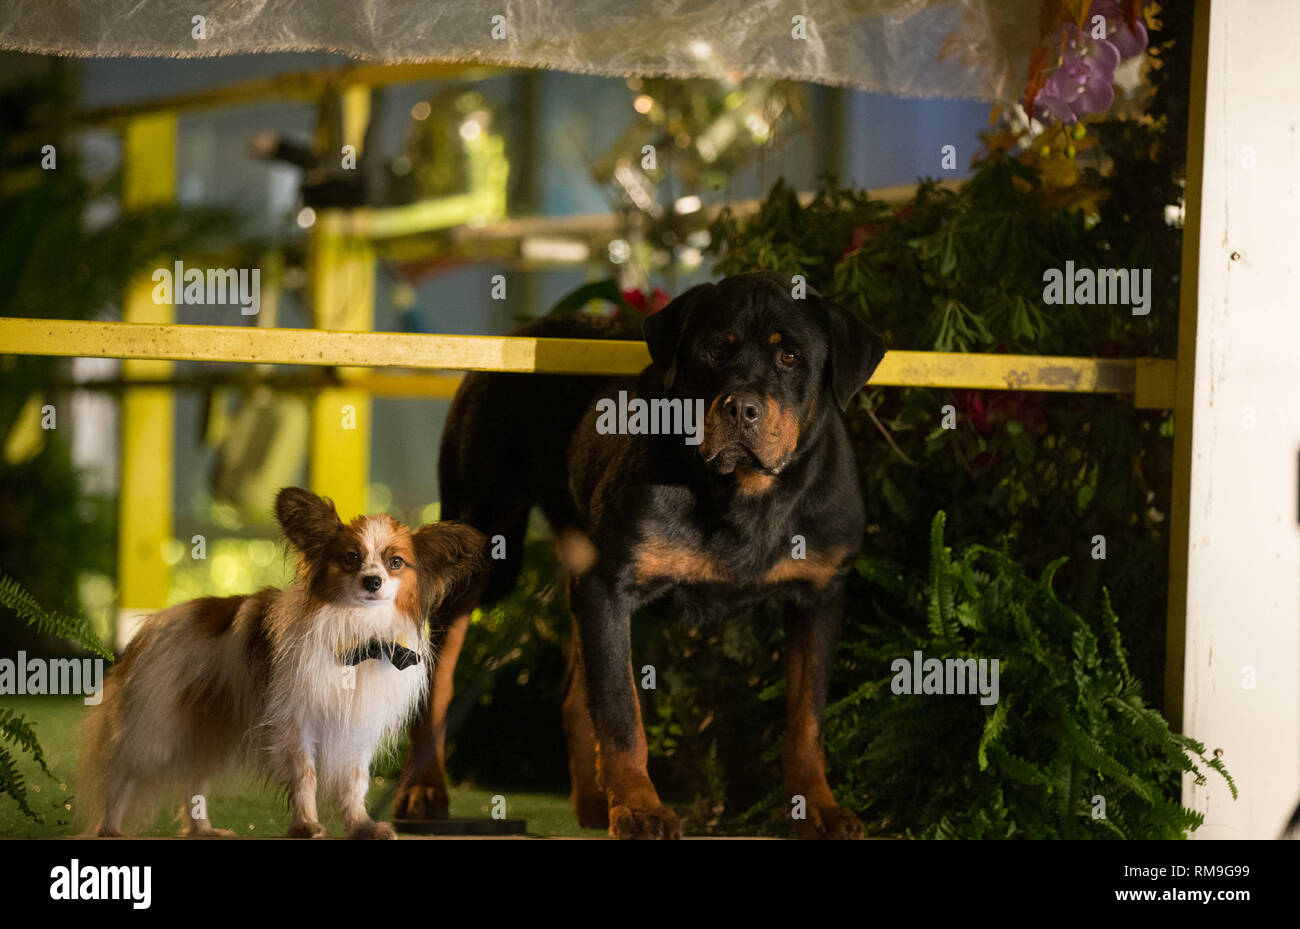 RELEASE DATE: May 18, 2018 TITLE: Show Dogs STUDIO: Riverstone Pictures DIRECTOR: Raja Gosnell PLOT: Max, a macho, solitary Rottweiler police dog is ordered to go undercover as a primped show dog in a prestigious Dog Show, along with his human partner, to avert a disaster from happening. STARRING: Will Arnett, Ludacris, Natasha Lyonne. (Credit Image: © Riverstone Pictures/Entertainment Pictures) - Stock Image